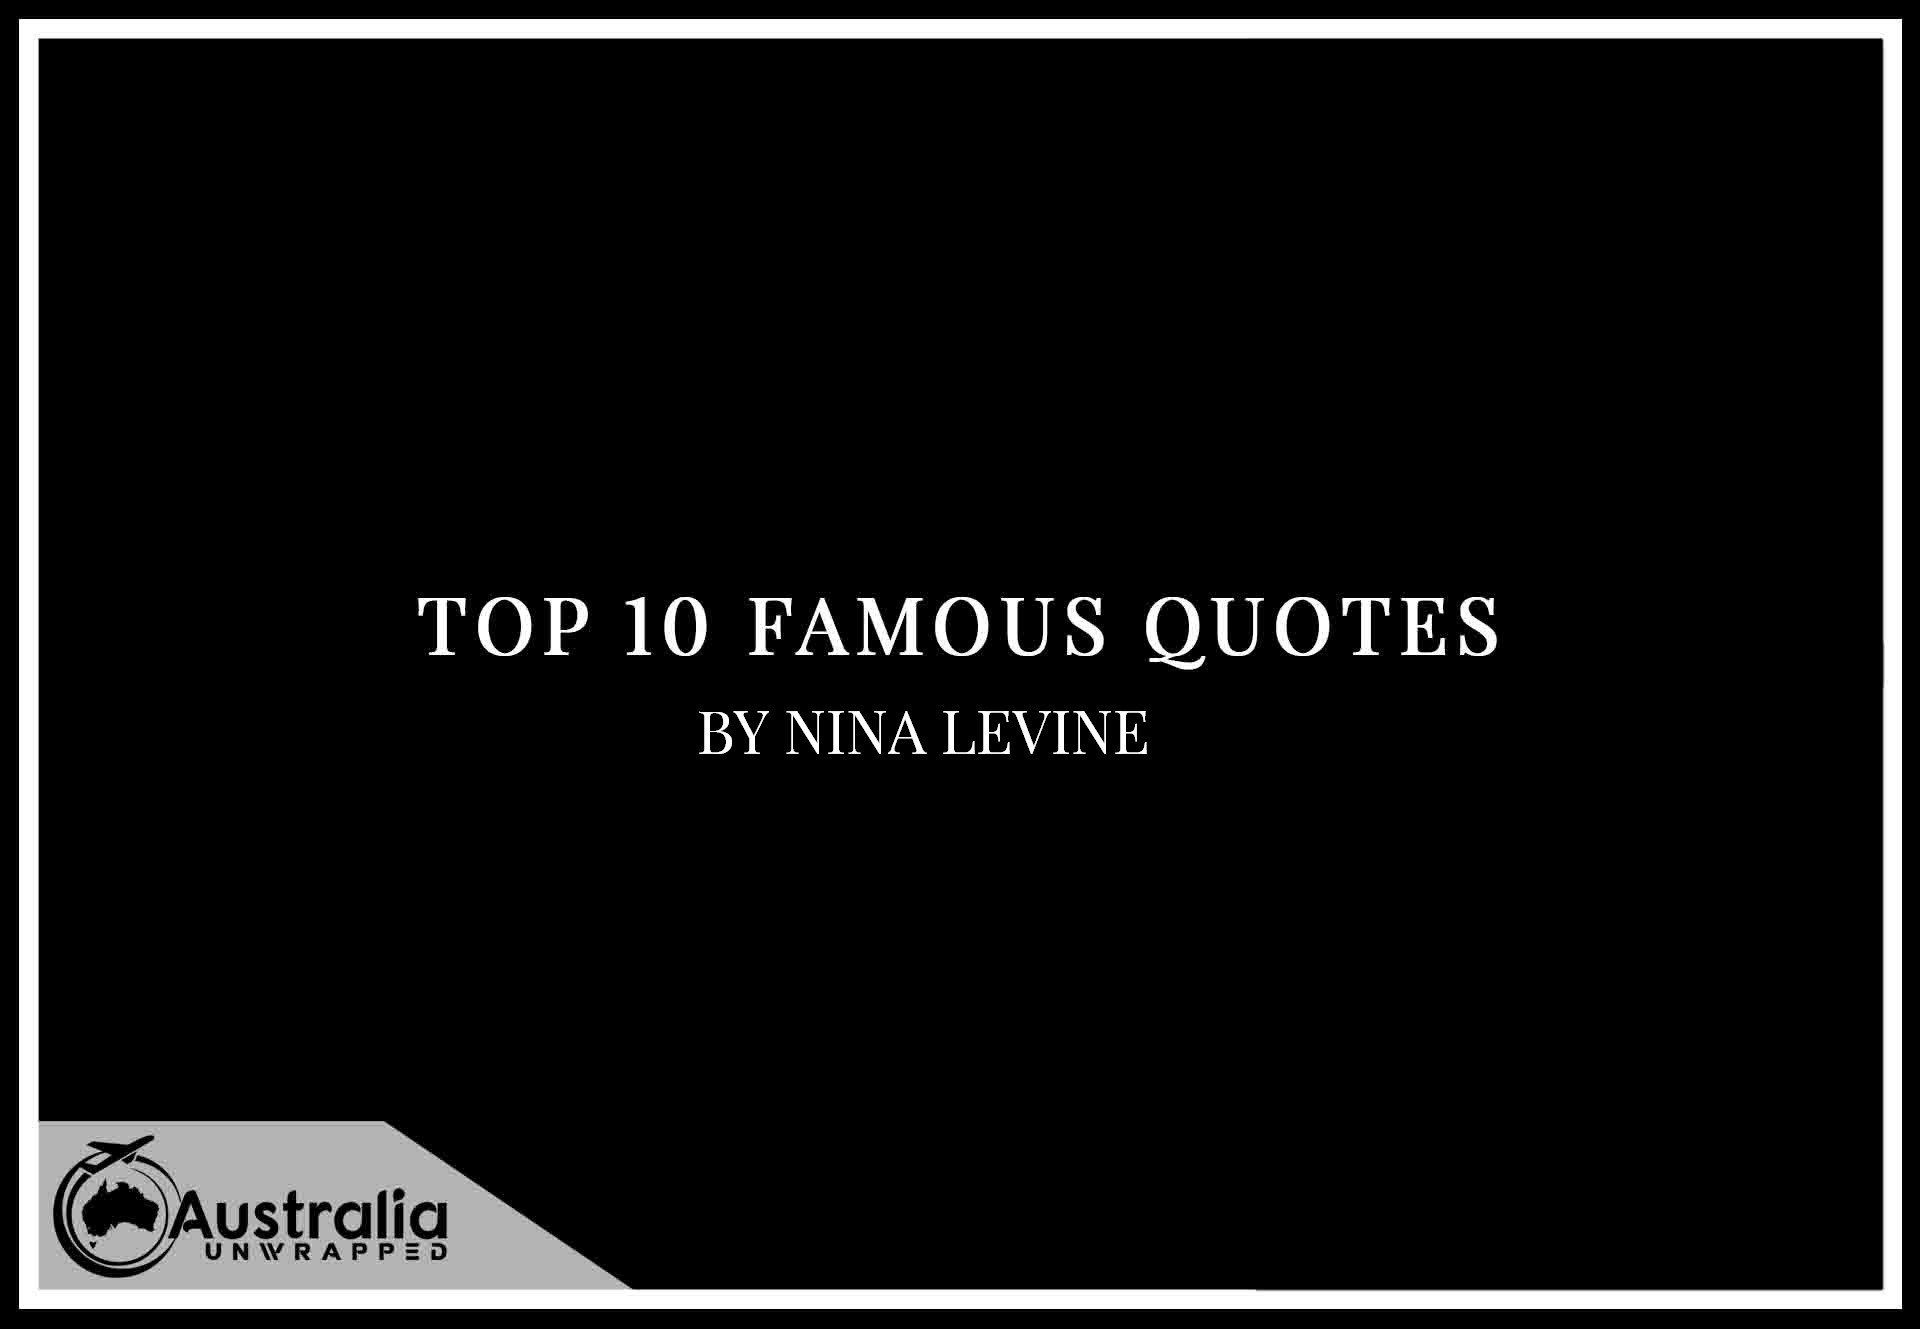 Top 10 Famous Quotes by Author Nina Levine